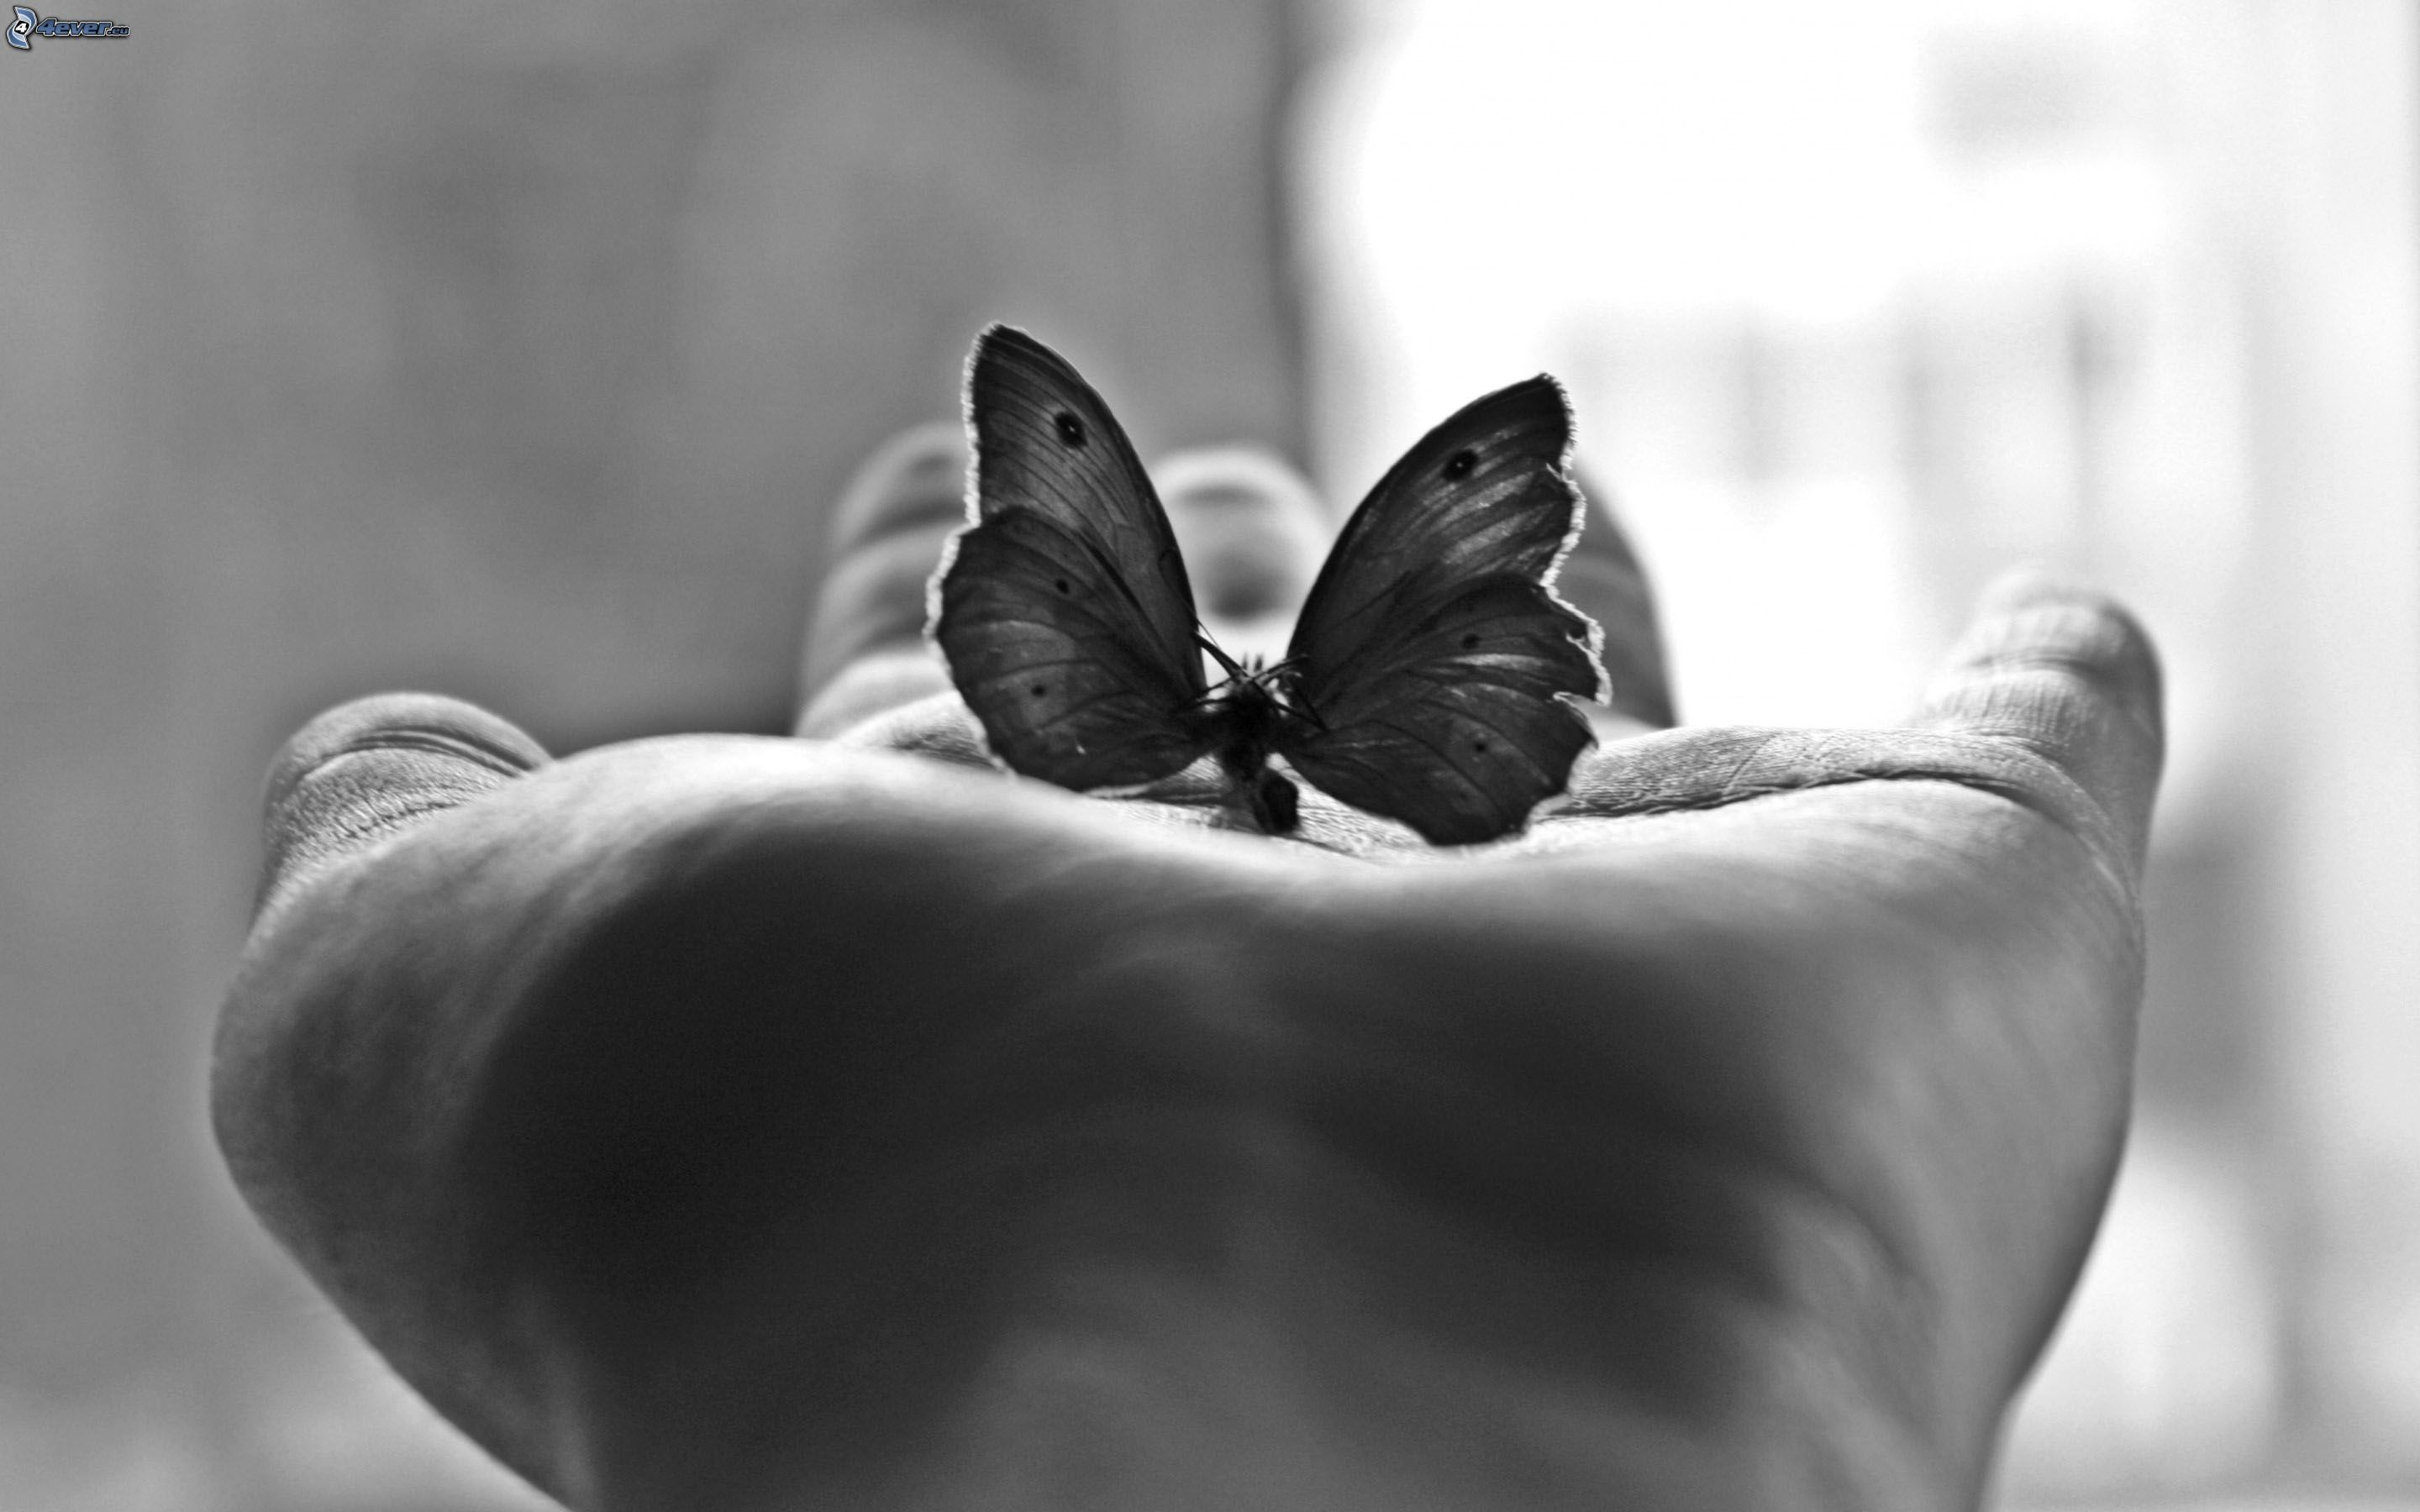 Uncategorized Butterfly Hand butterfly hand black and white photo 238842 jpg download picture